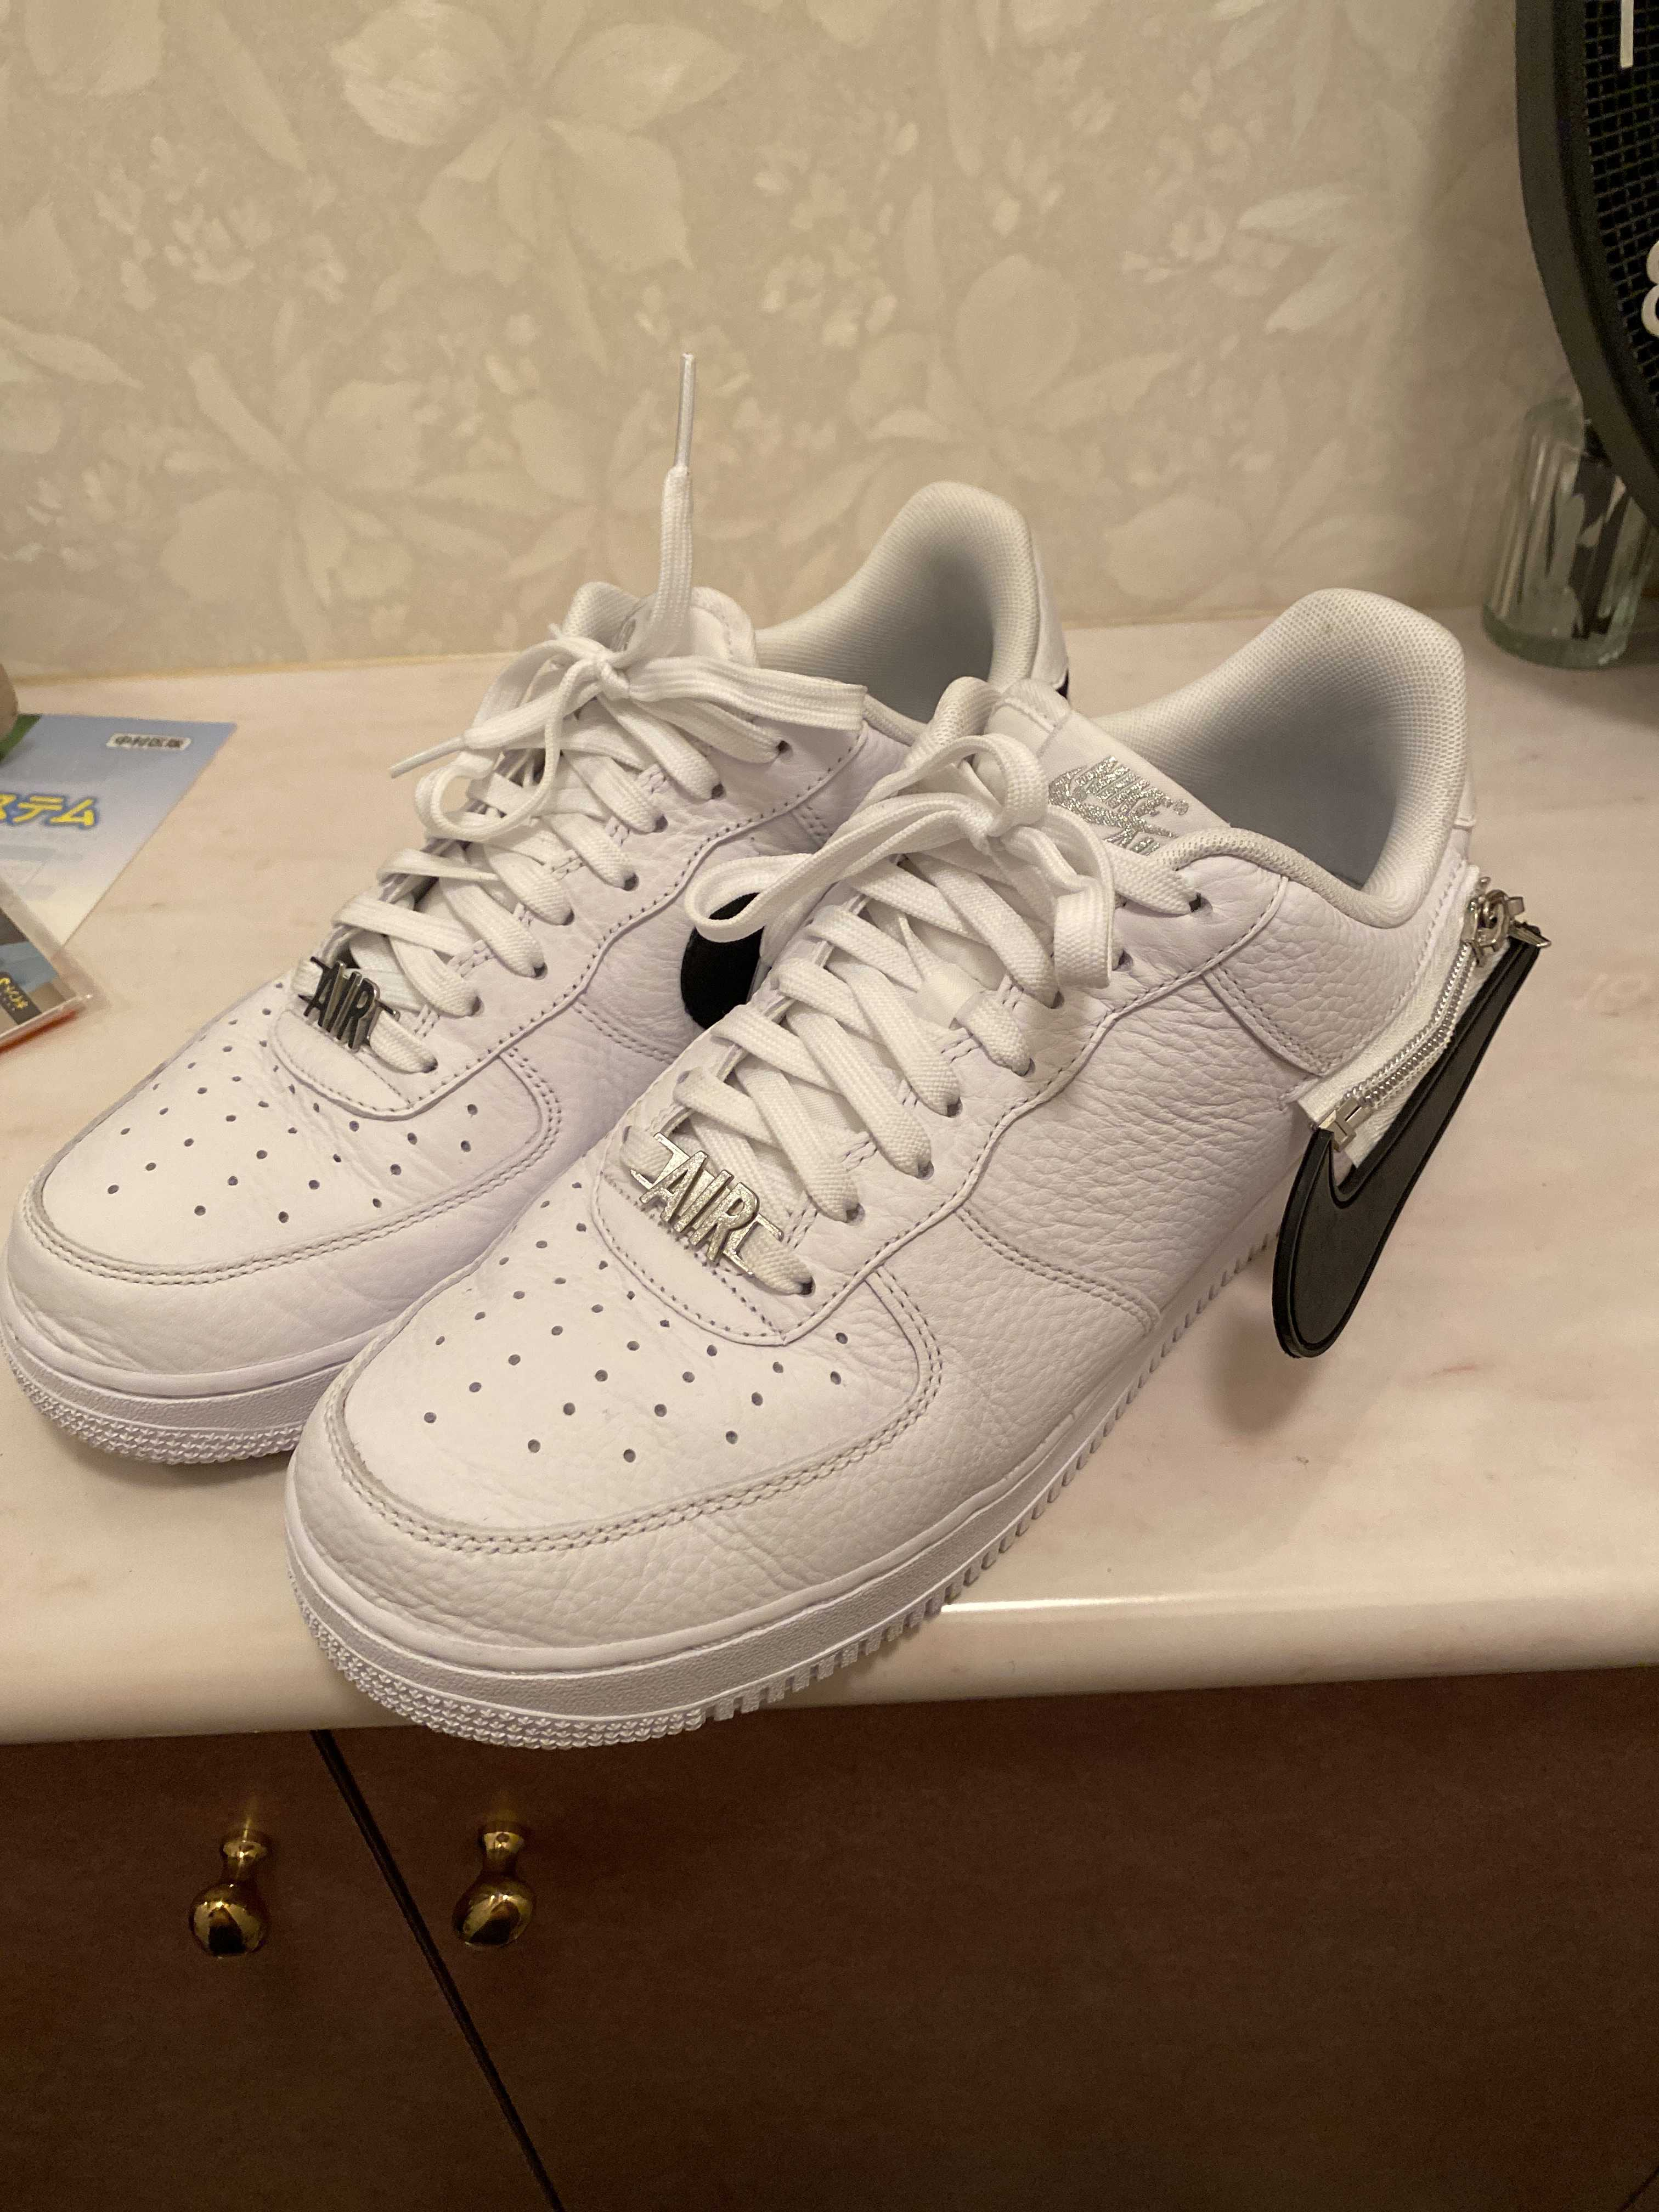 NIKE AIR FORCE 1 '07 PRM WHITE/BLACK-BARELY VOLT 20SU-S